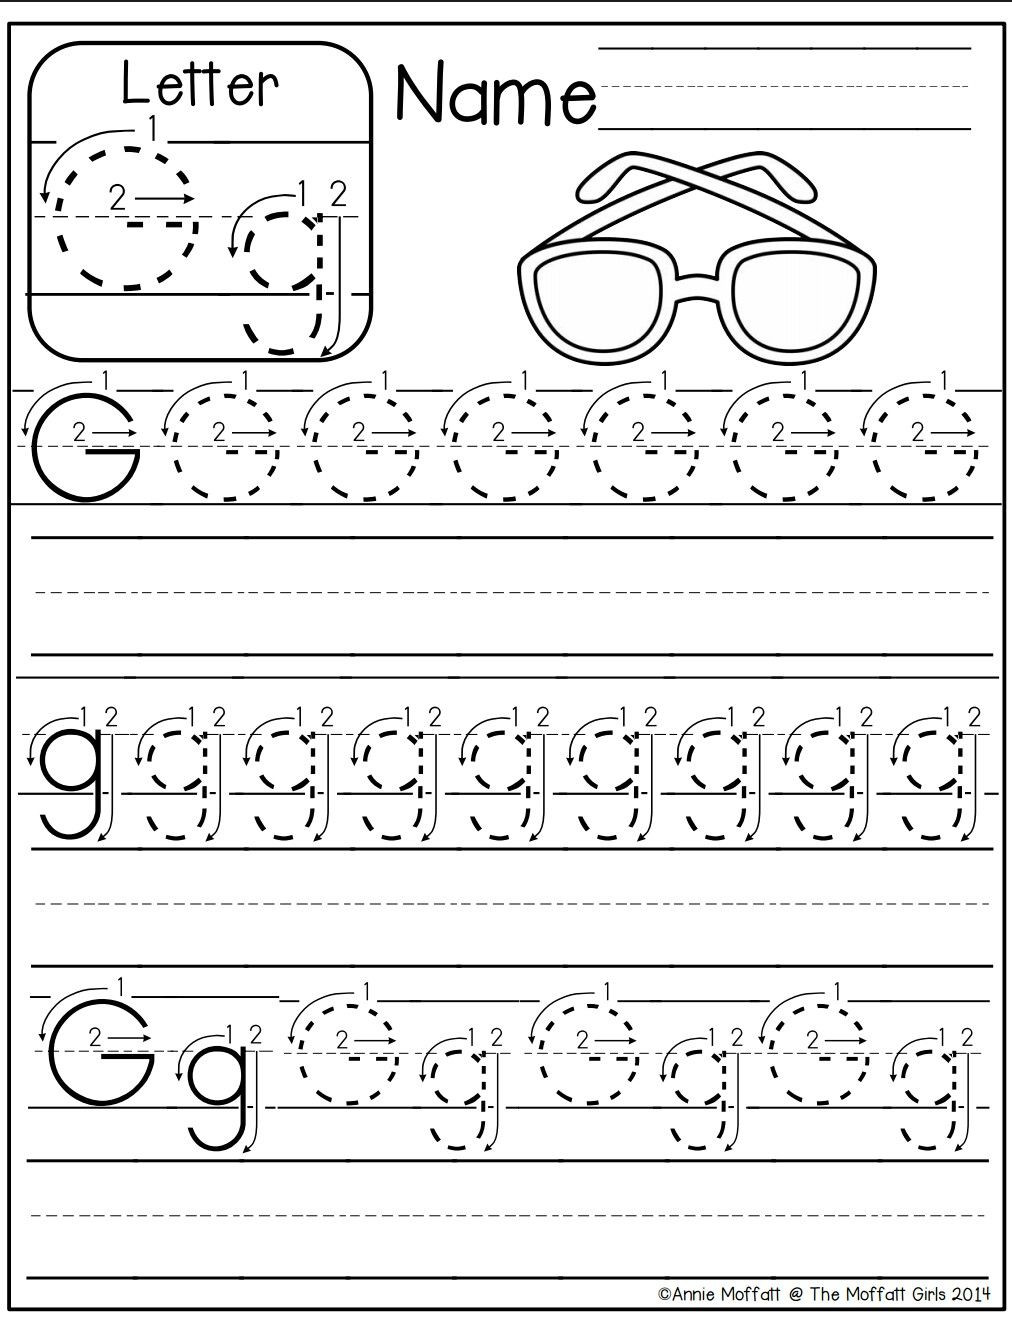 G Worksheets for Preschool Letter G Worksheet